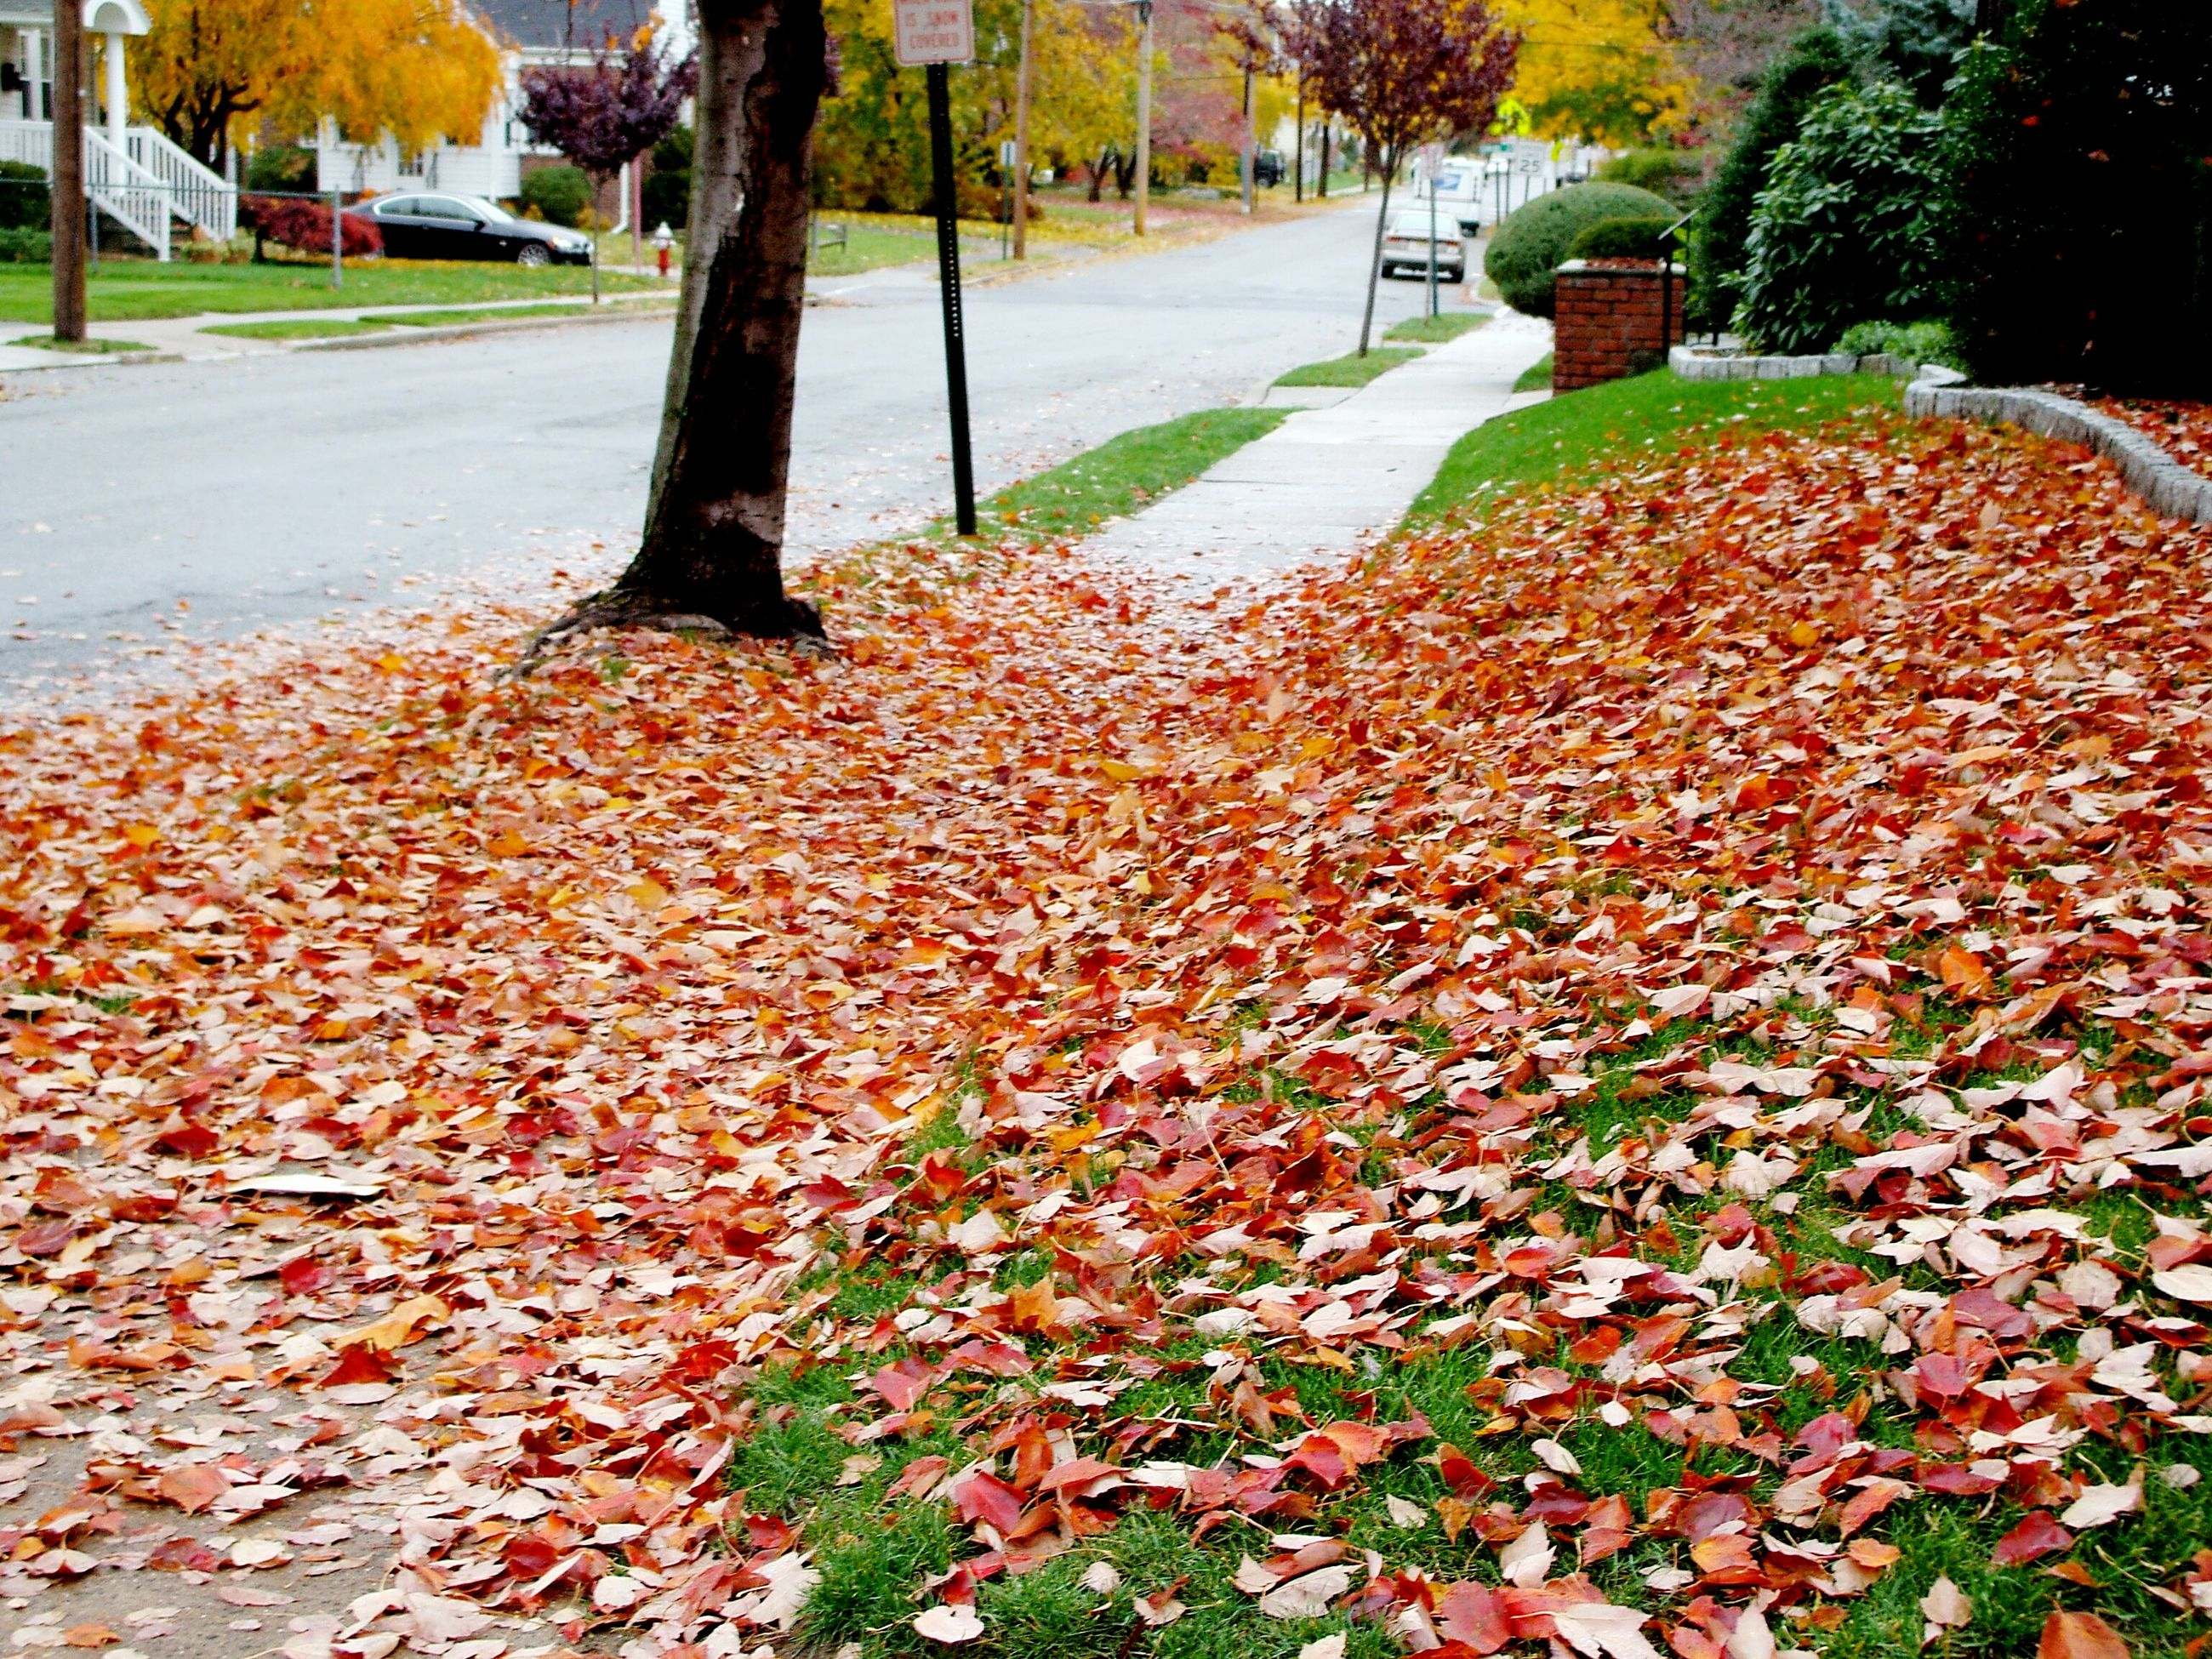 autumn, change, season, street, leaf, transportation, tree, road, orange color, fallen, building exterior, the way forward, car, leaves, city, outdoors, nature, day, asphalt, surface level